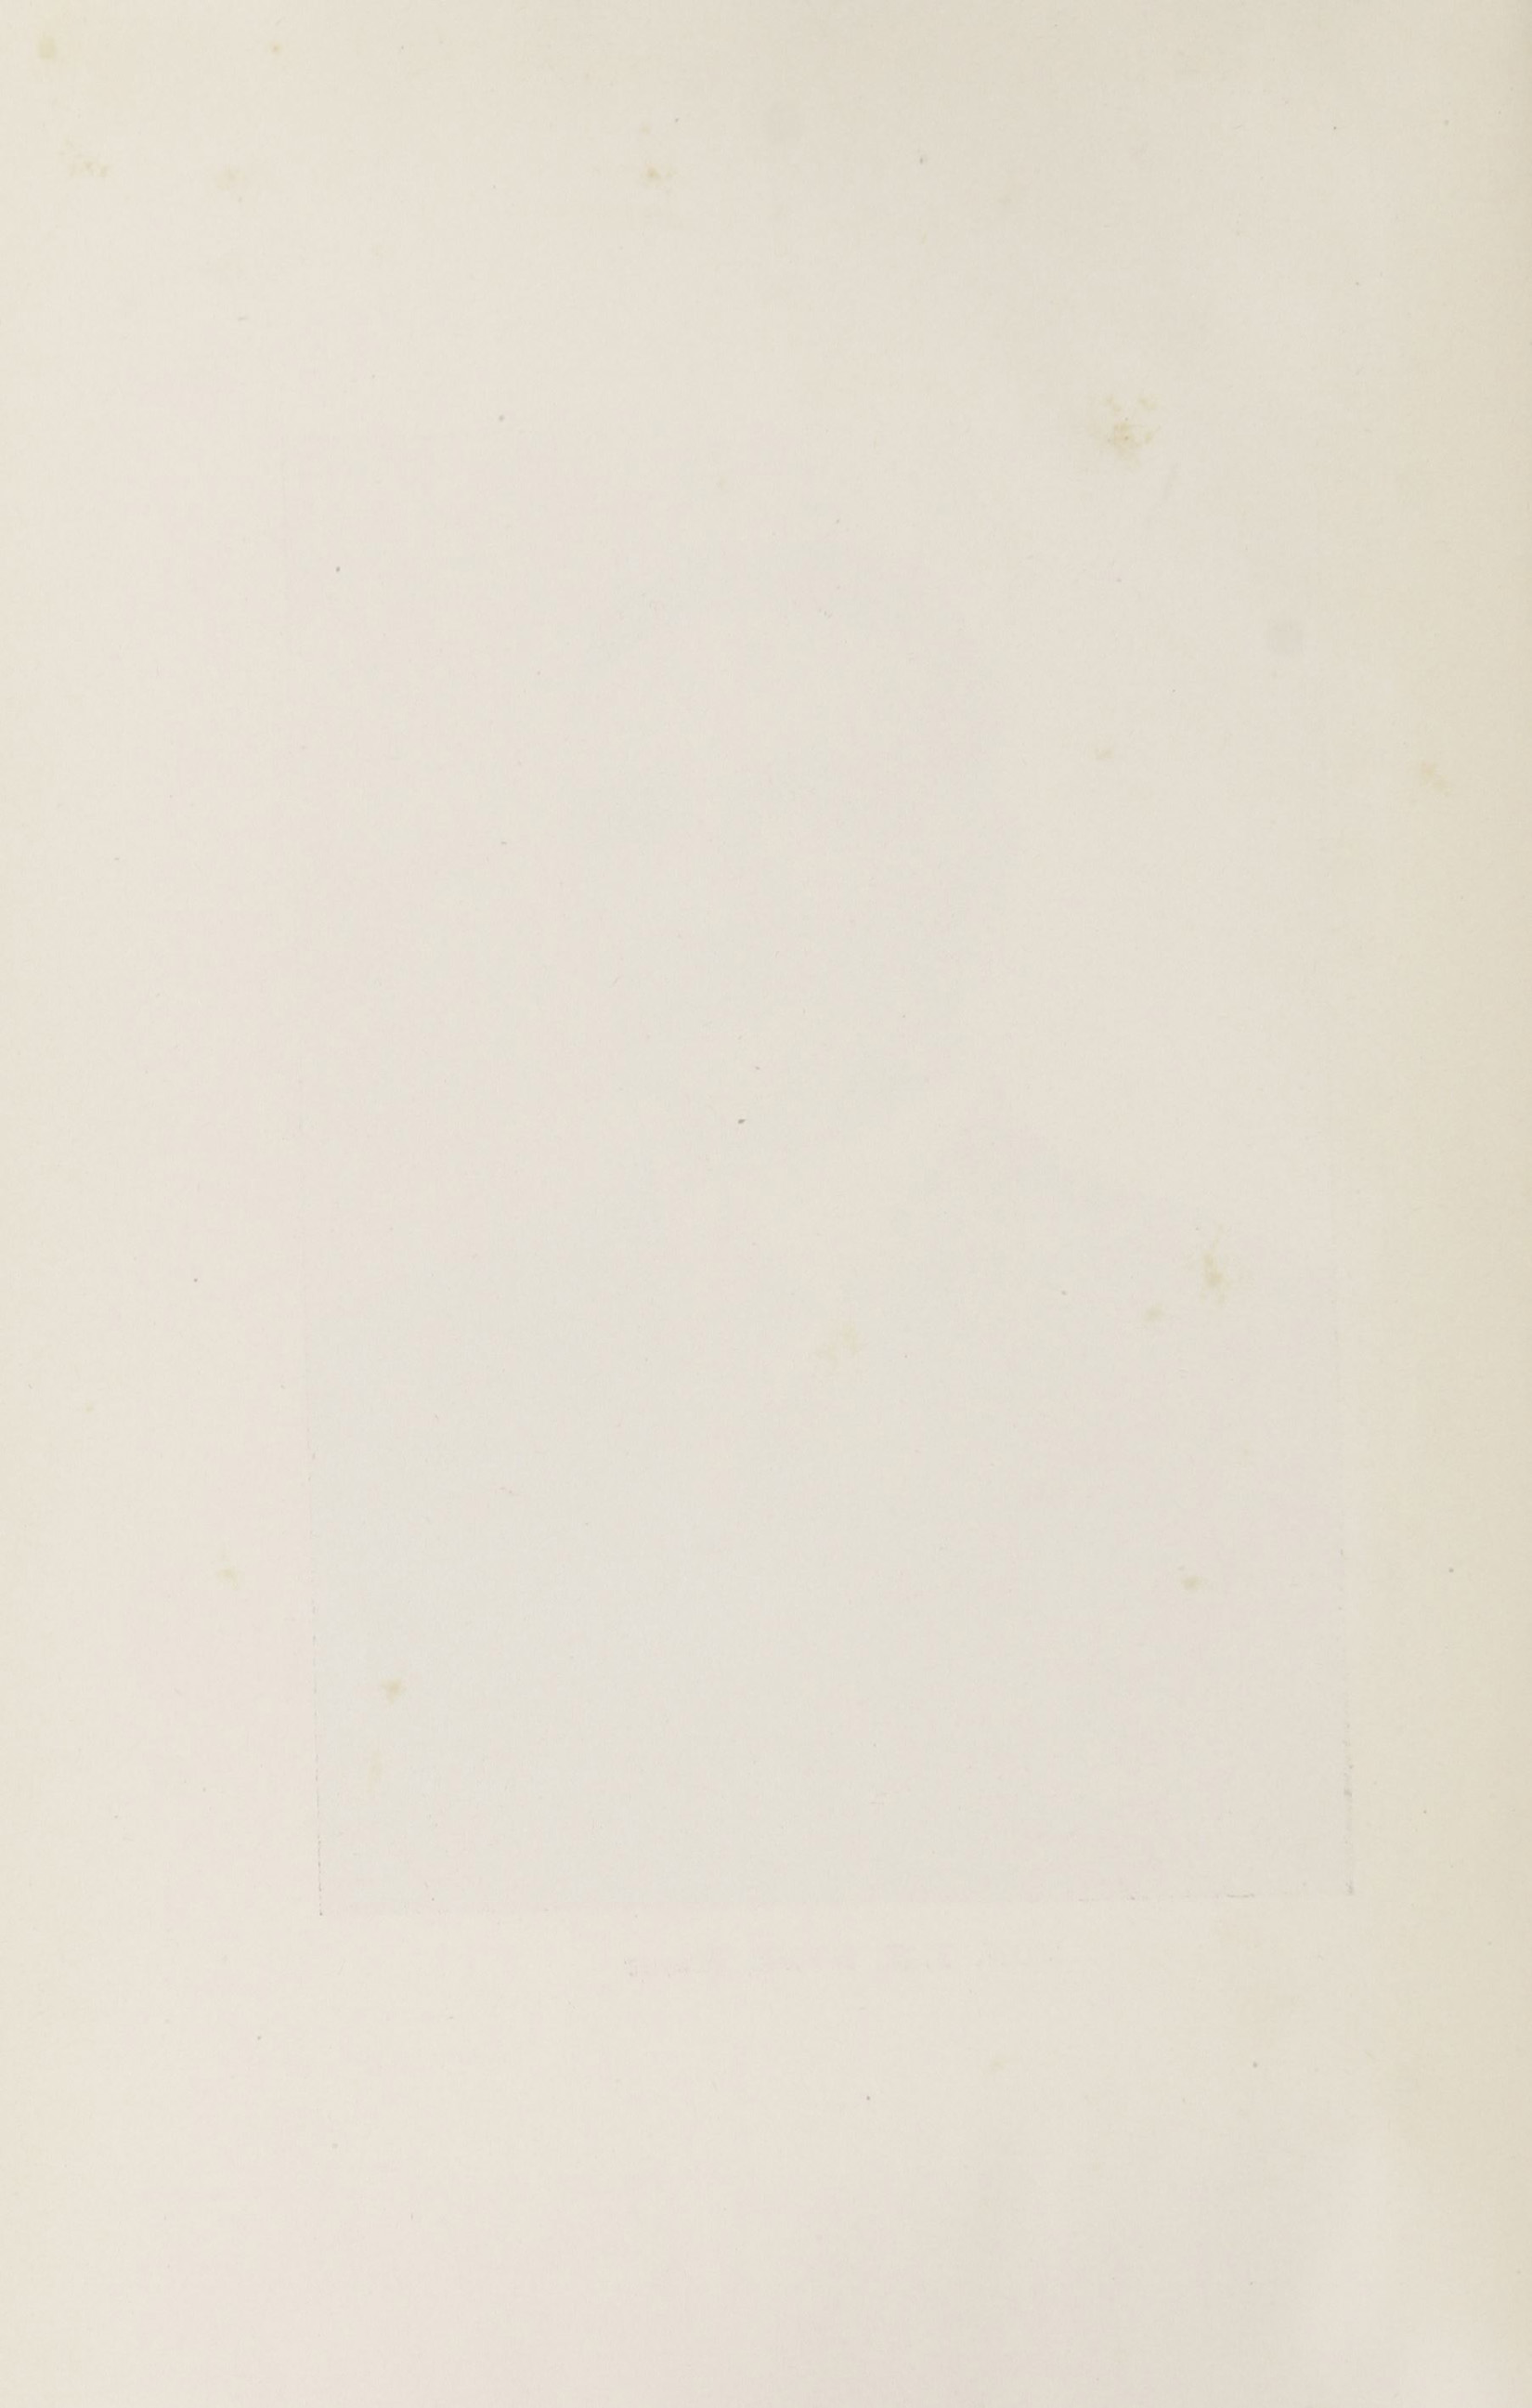 Charleston Yearbook, 1916, blank back of photograph